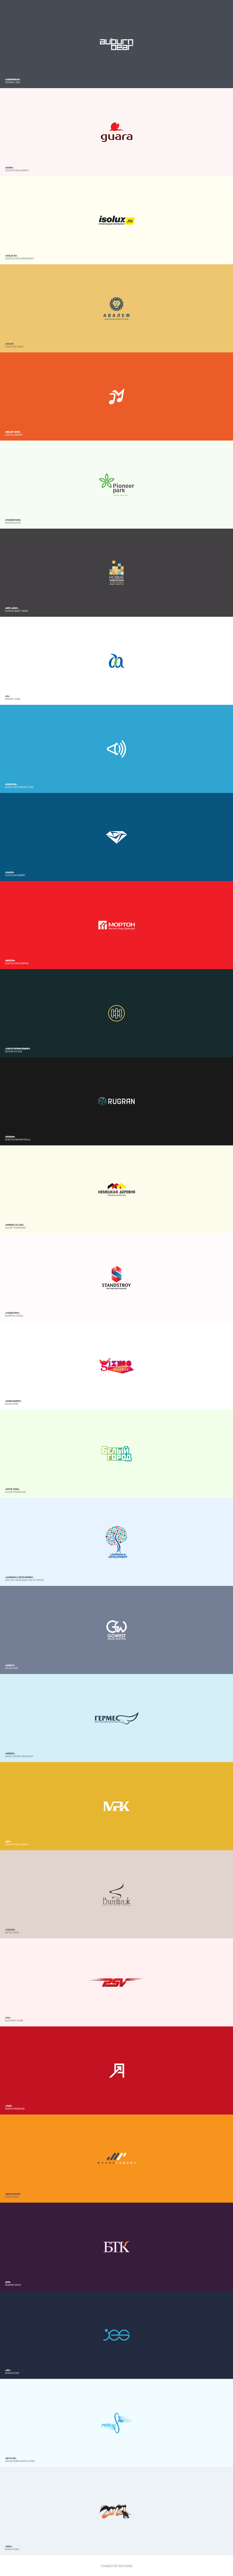 logo,Logotype,Icon,logos,construction company,logistic company,housing estate,Smart homes,Grocery store,Musical Instruments Store,Heating systems,village townhouses,mark,Coffee House,auburnbear